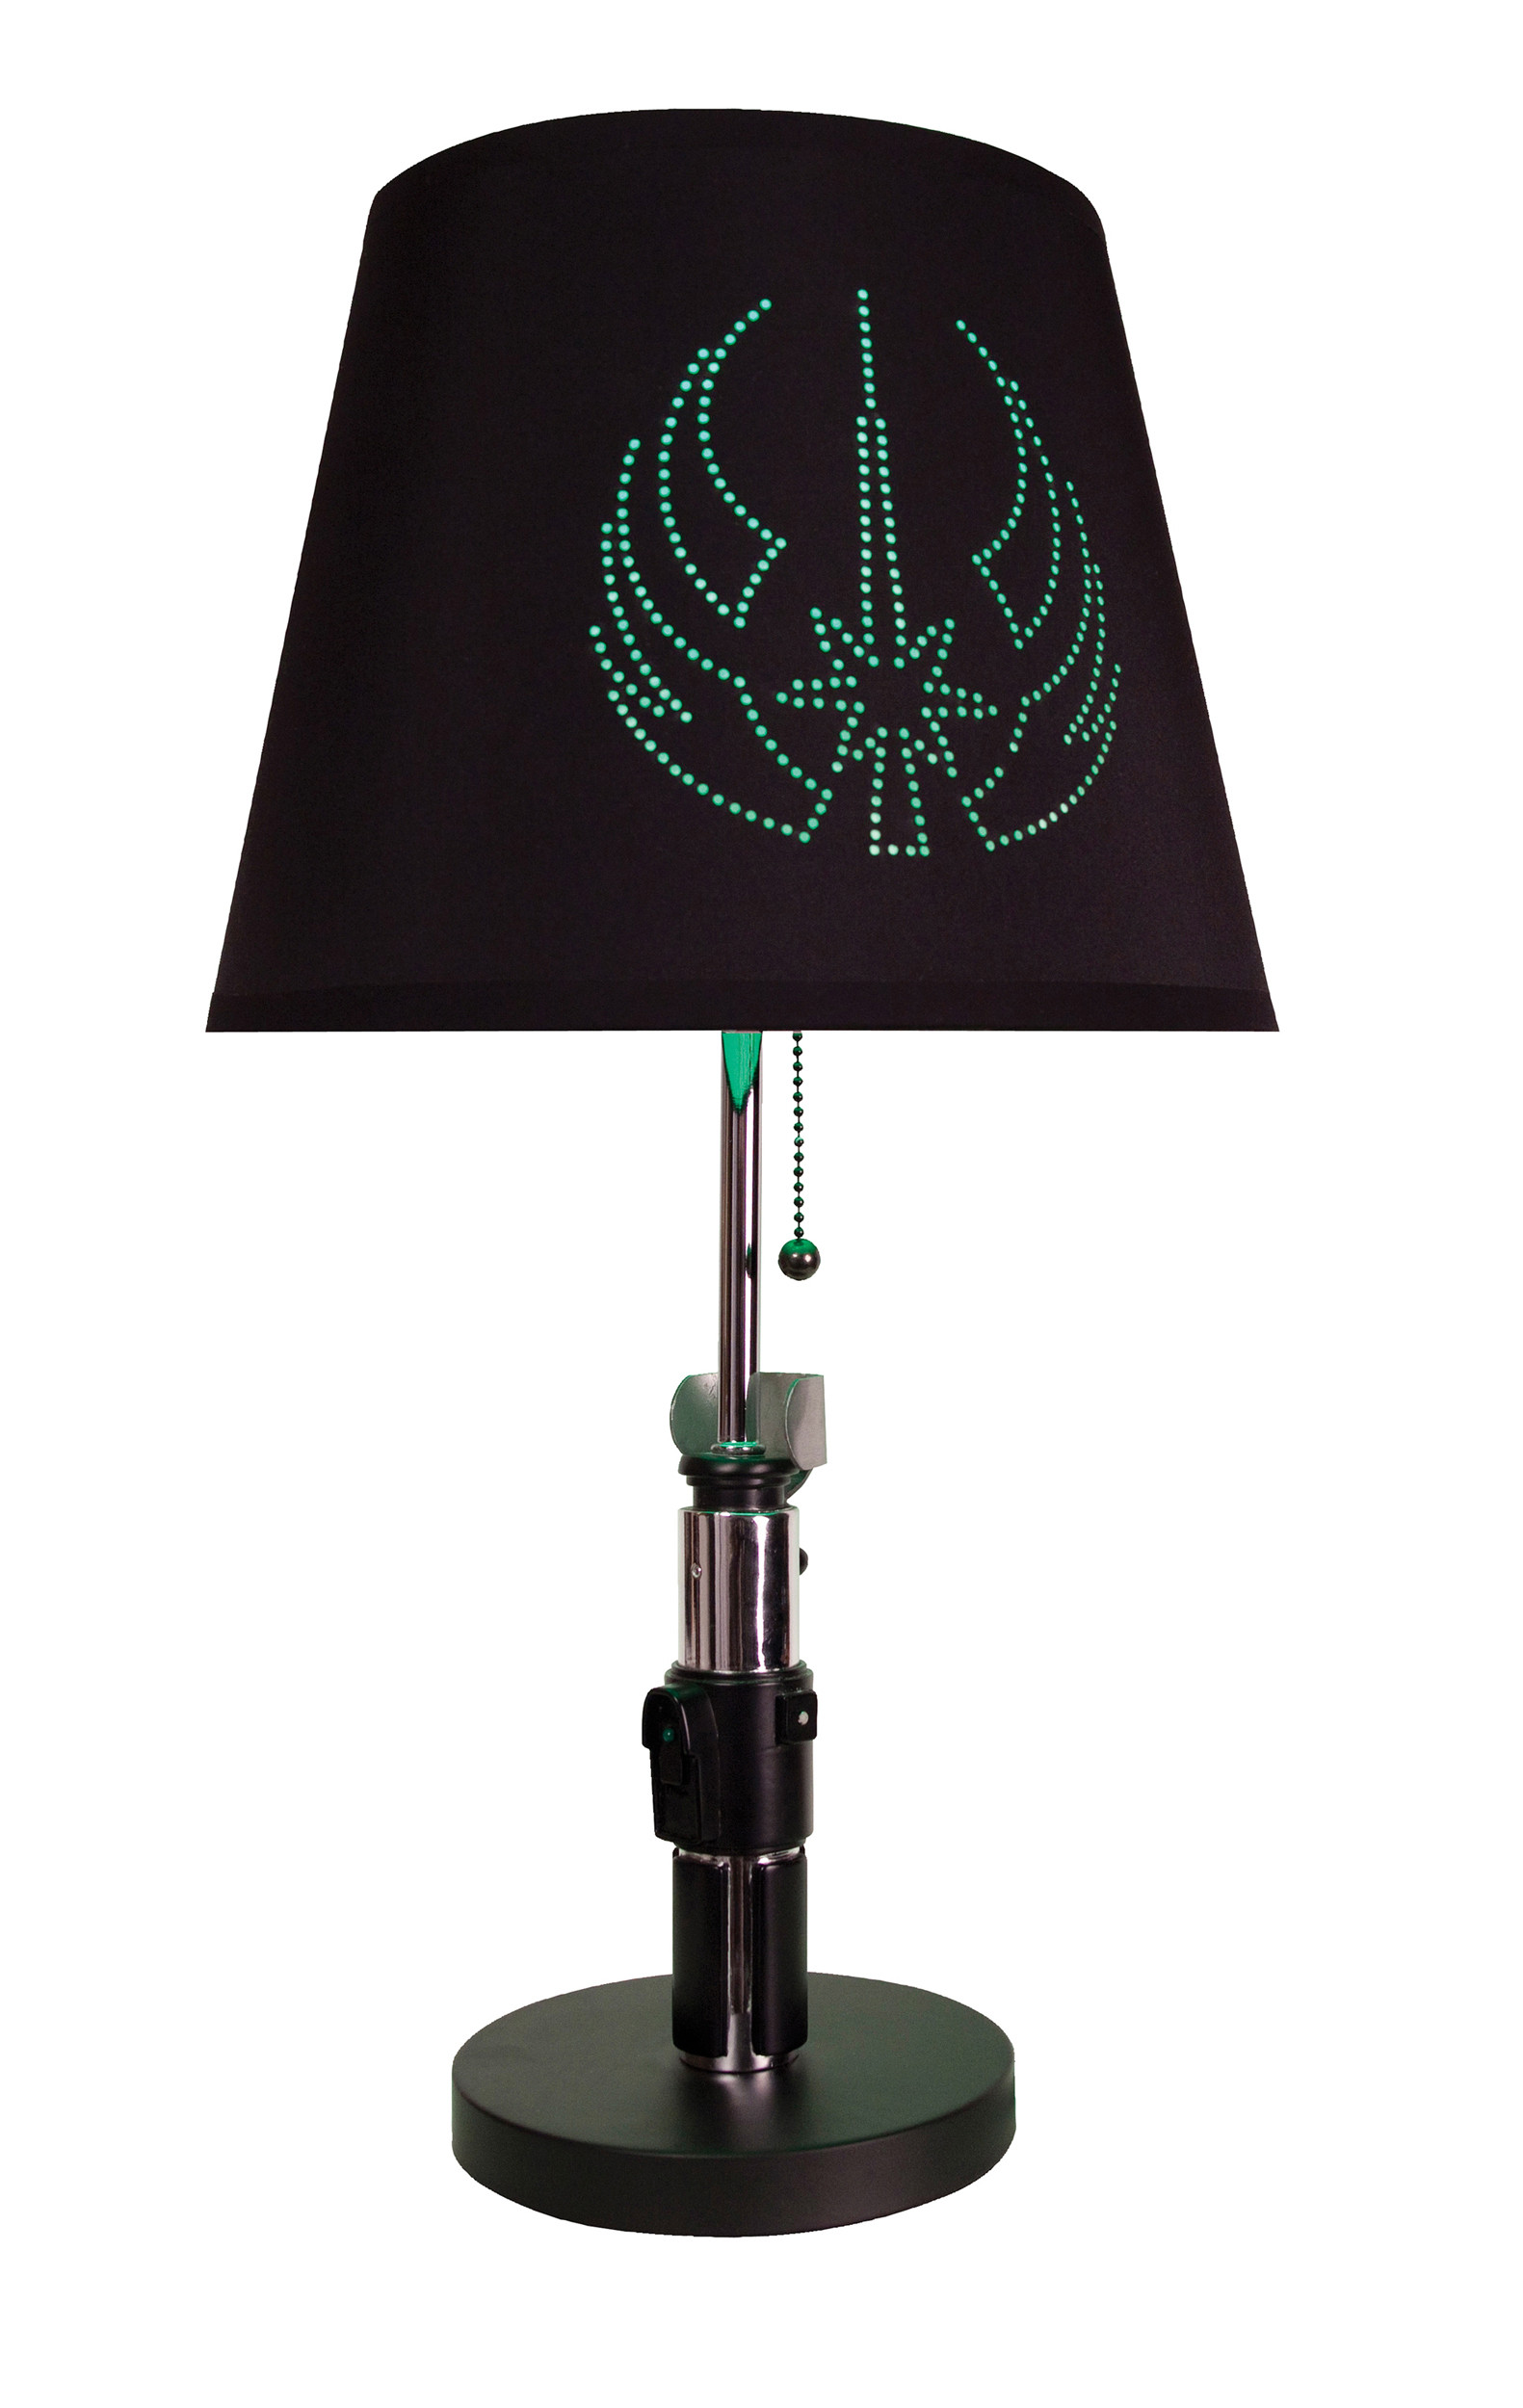 Best ideas about Star Wars Desk Lamp . Save or Pin Star Wars Lightsaber Table Lamps Bring the Force to Every Room Now.